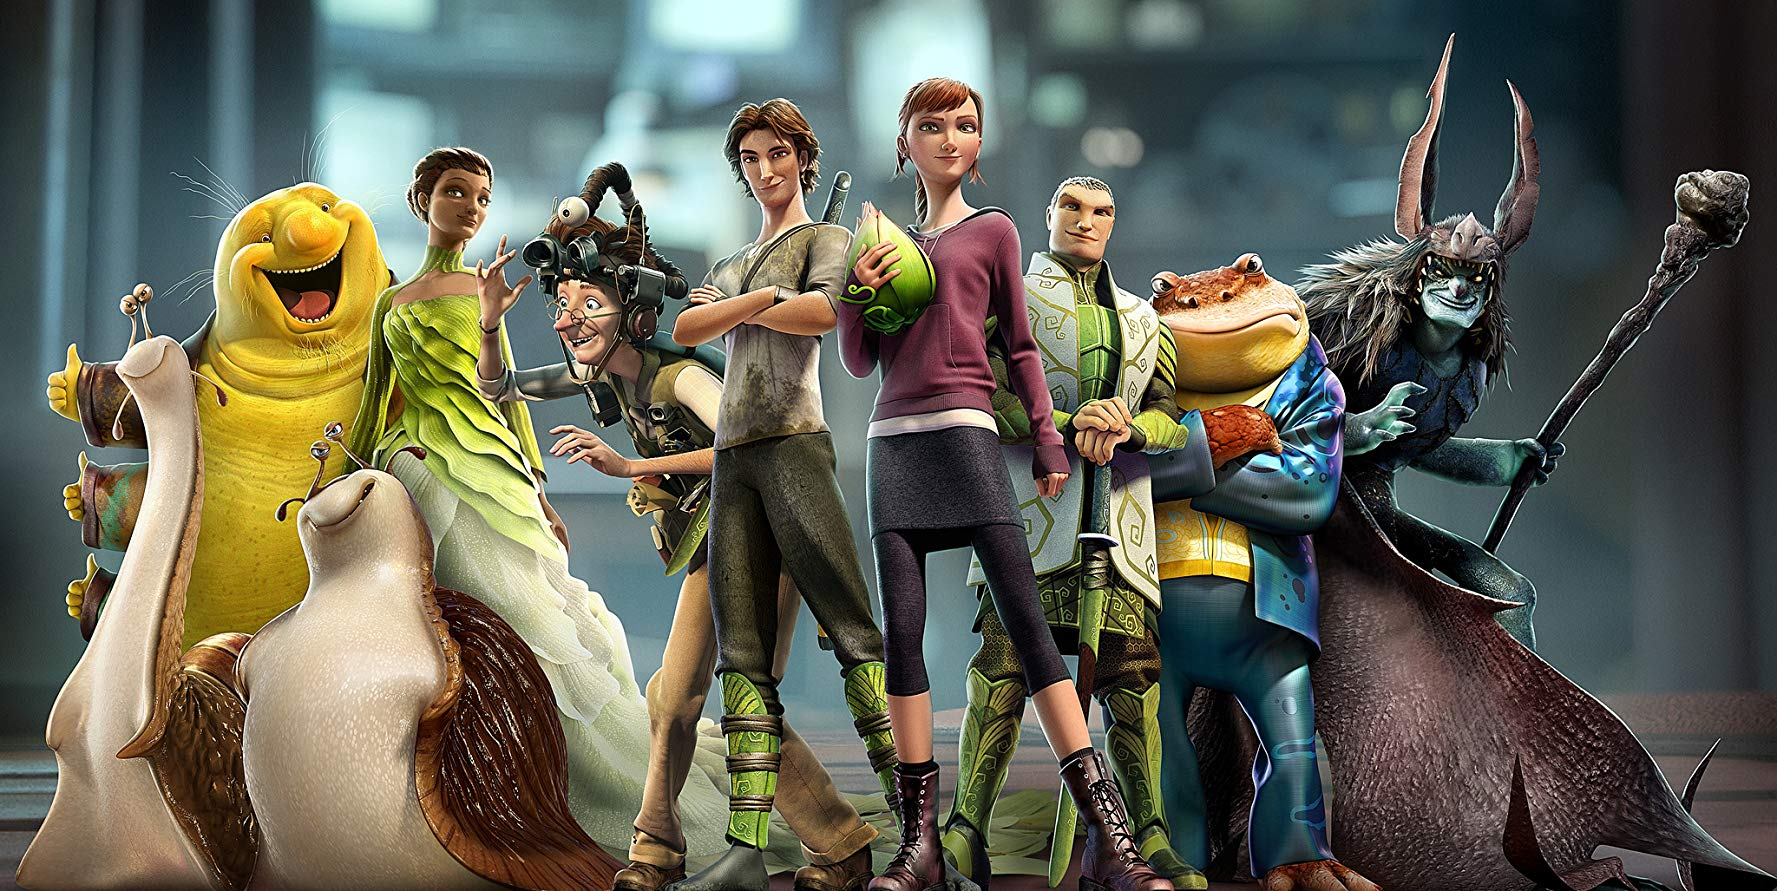 Character line-up - (l to r) Grub (voiced by Chris O'Dowd), Nim Galuu (voiced by Steven Tyler), Mub (voiced by Aziz Ansari), Queen Tara (voiced by Beyoncé), Professor Bomba (voiced by Jason Sudeikis), Nod (voiced by Josh Hutcherson), shrunken human heroine M.K. (voiced by Amanda Seyfried), Ronin (voiced by Colin Farrell), Bugo (voiced by Pitbull) and the Boggan leader Mandrake (voiced by Christoph Waltz) in Epic (2013)